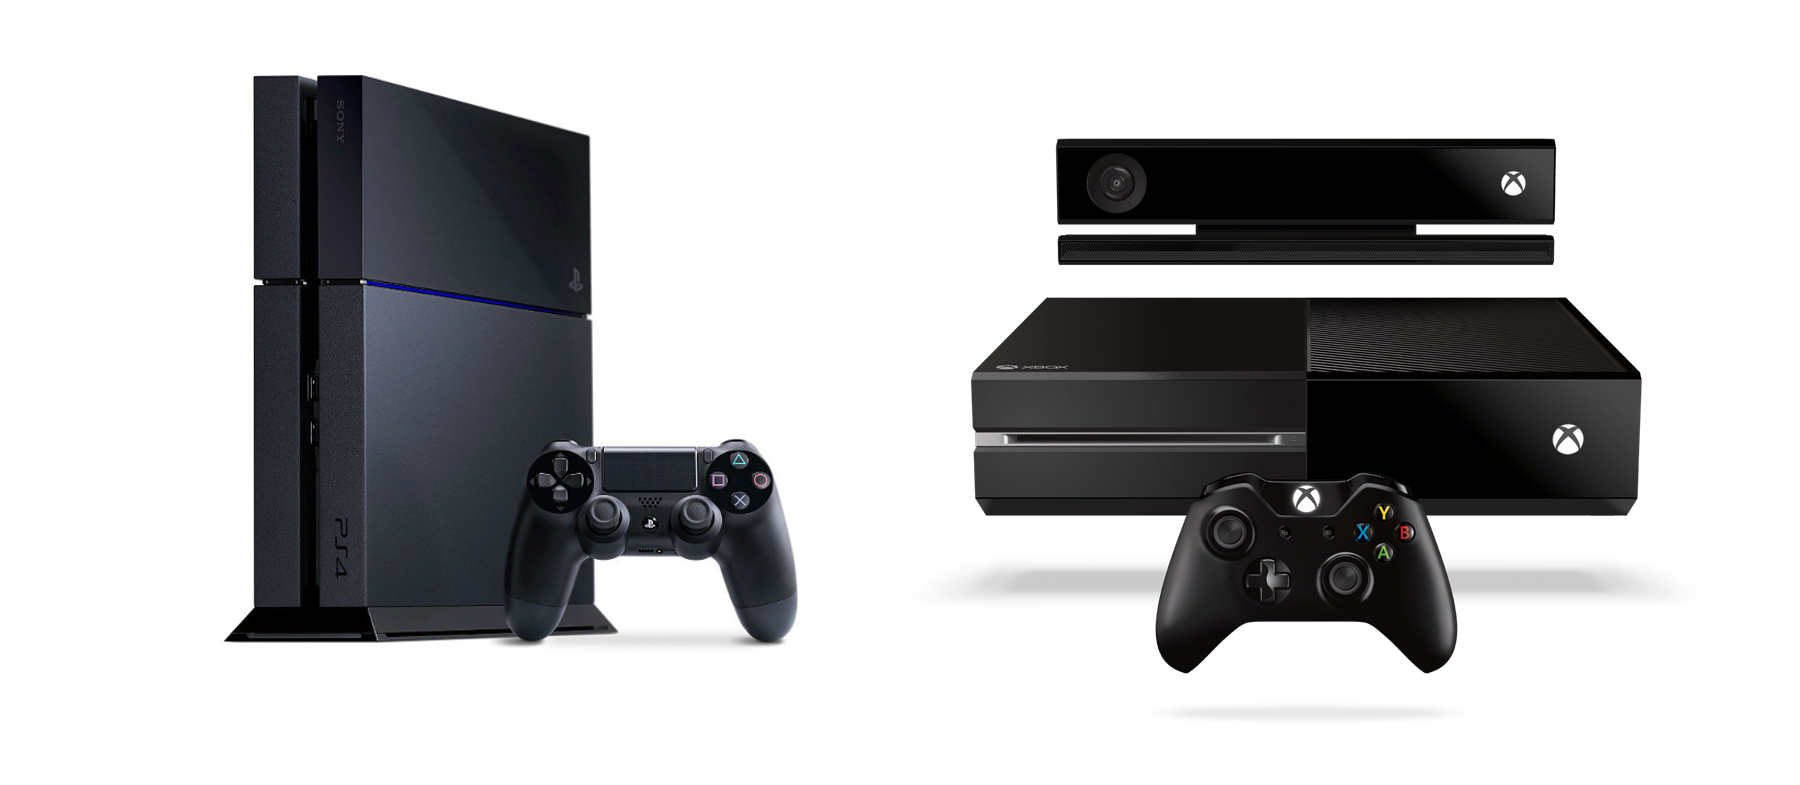 how to play iso files on ps4